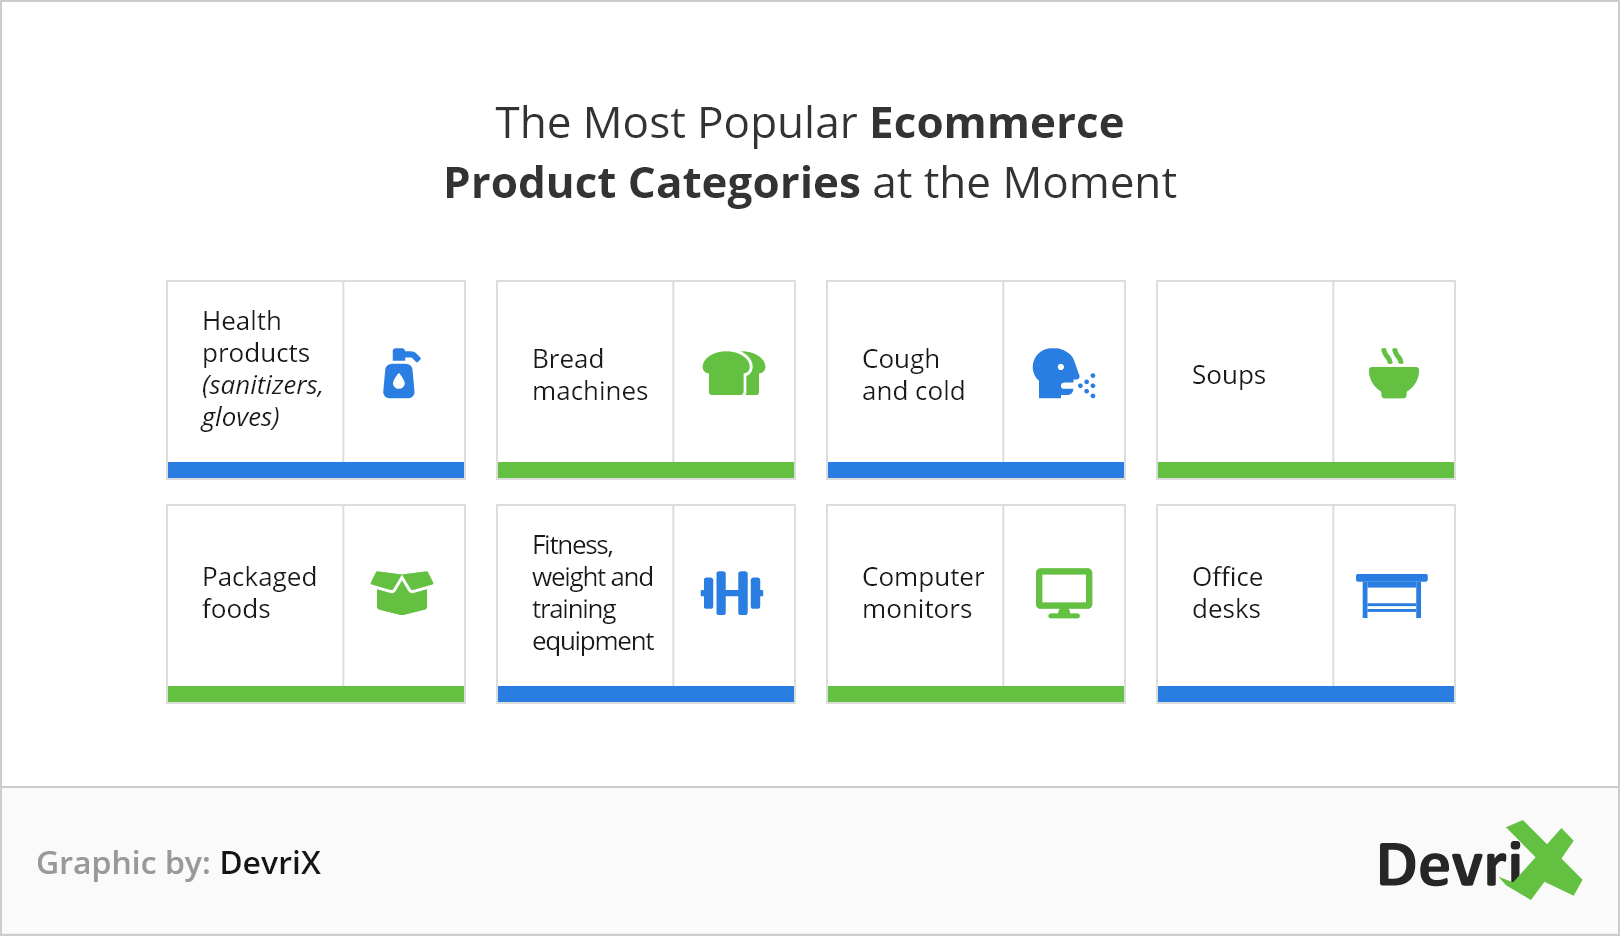 The most popular eCommerce product categories in 2020